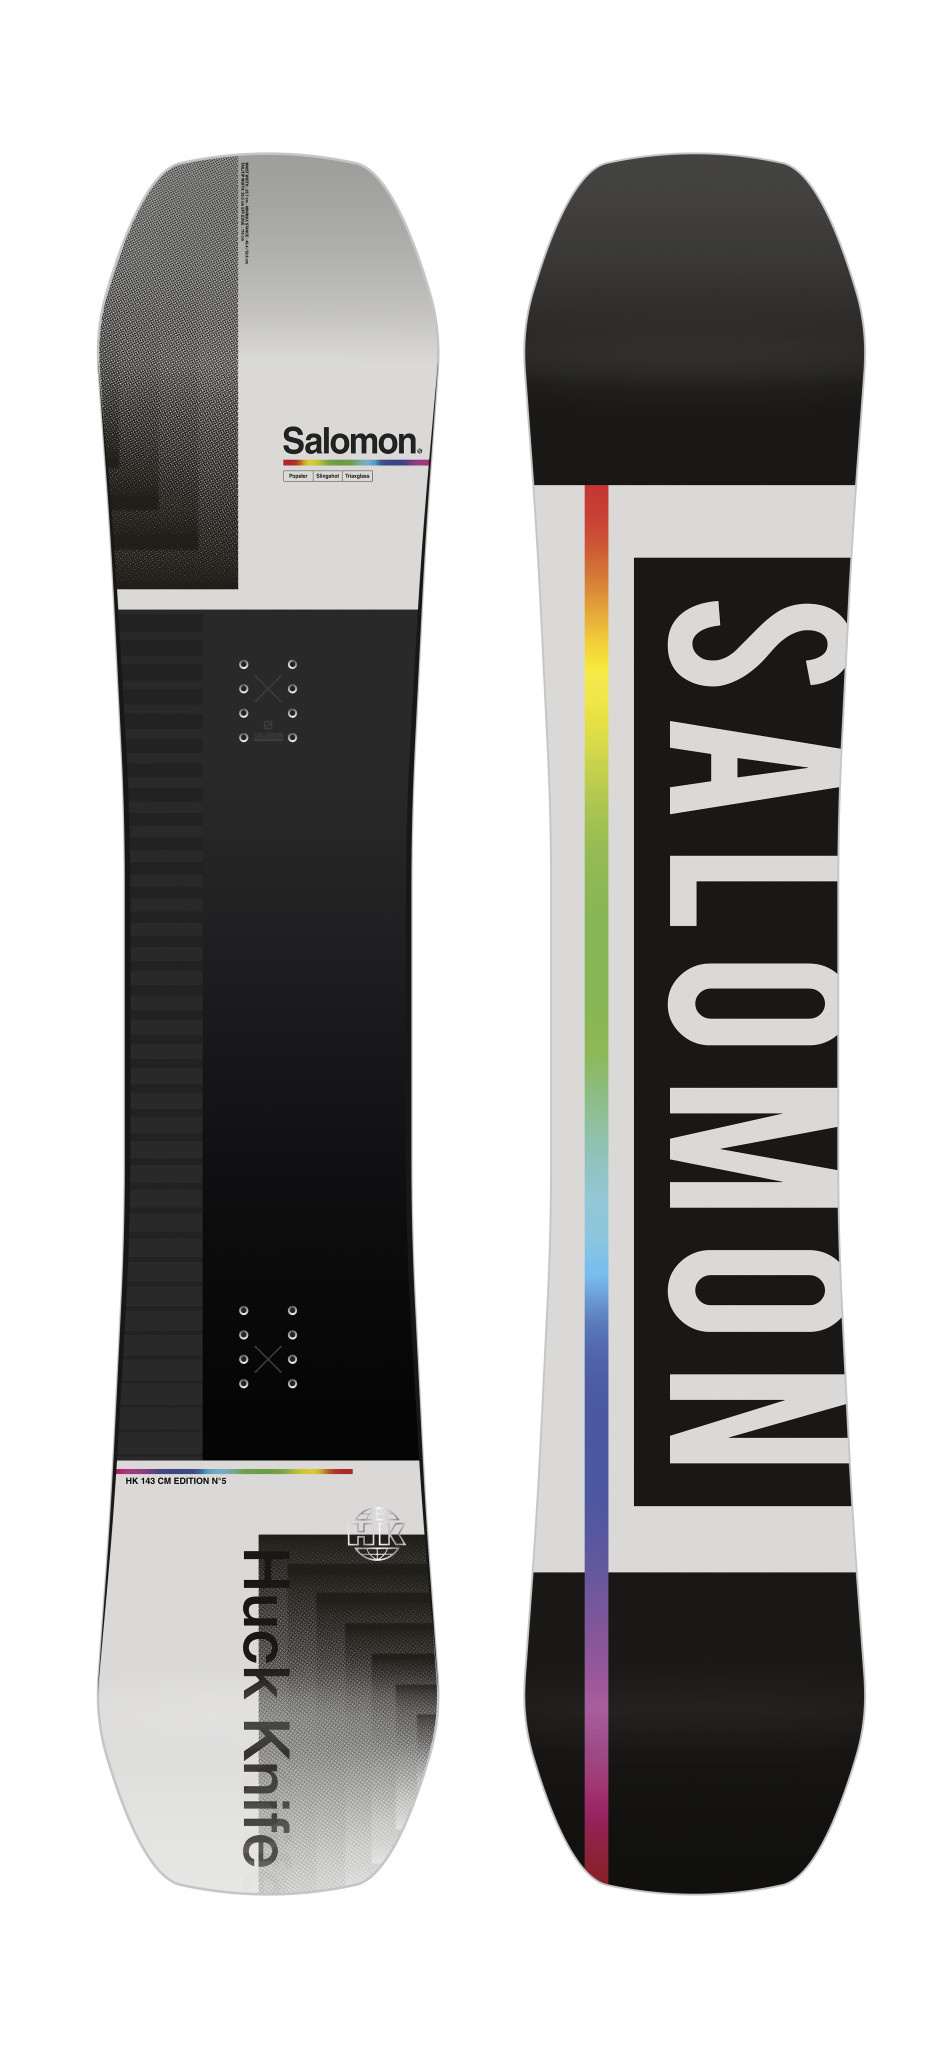 SALOMON Salomon Men's Huck Knife Snowboard (2021)